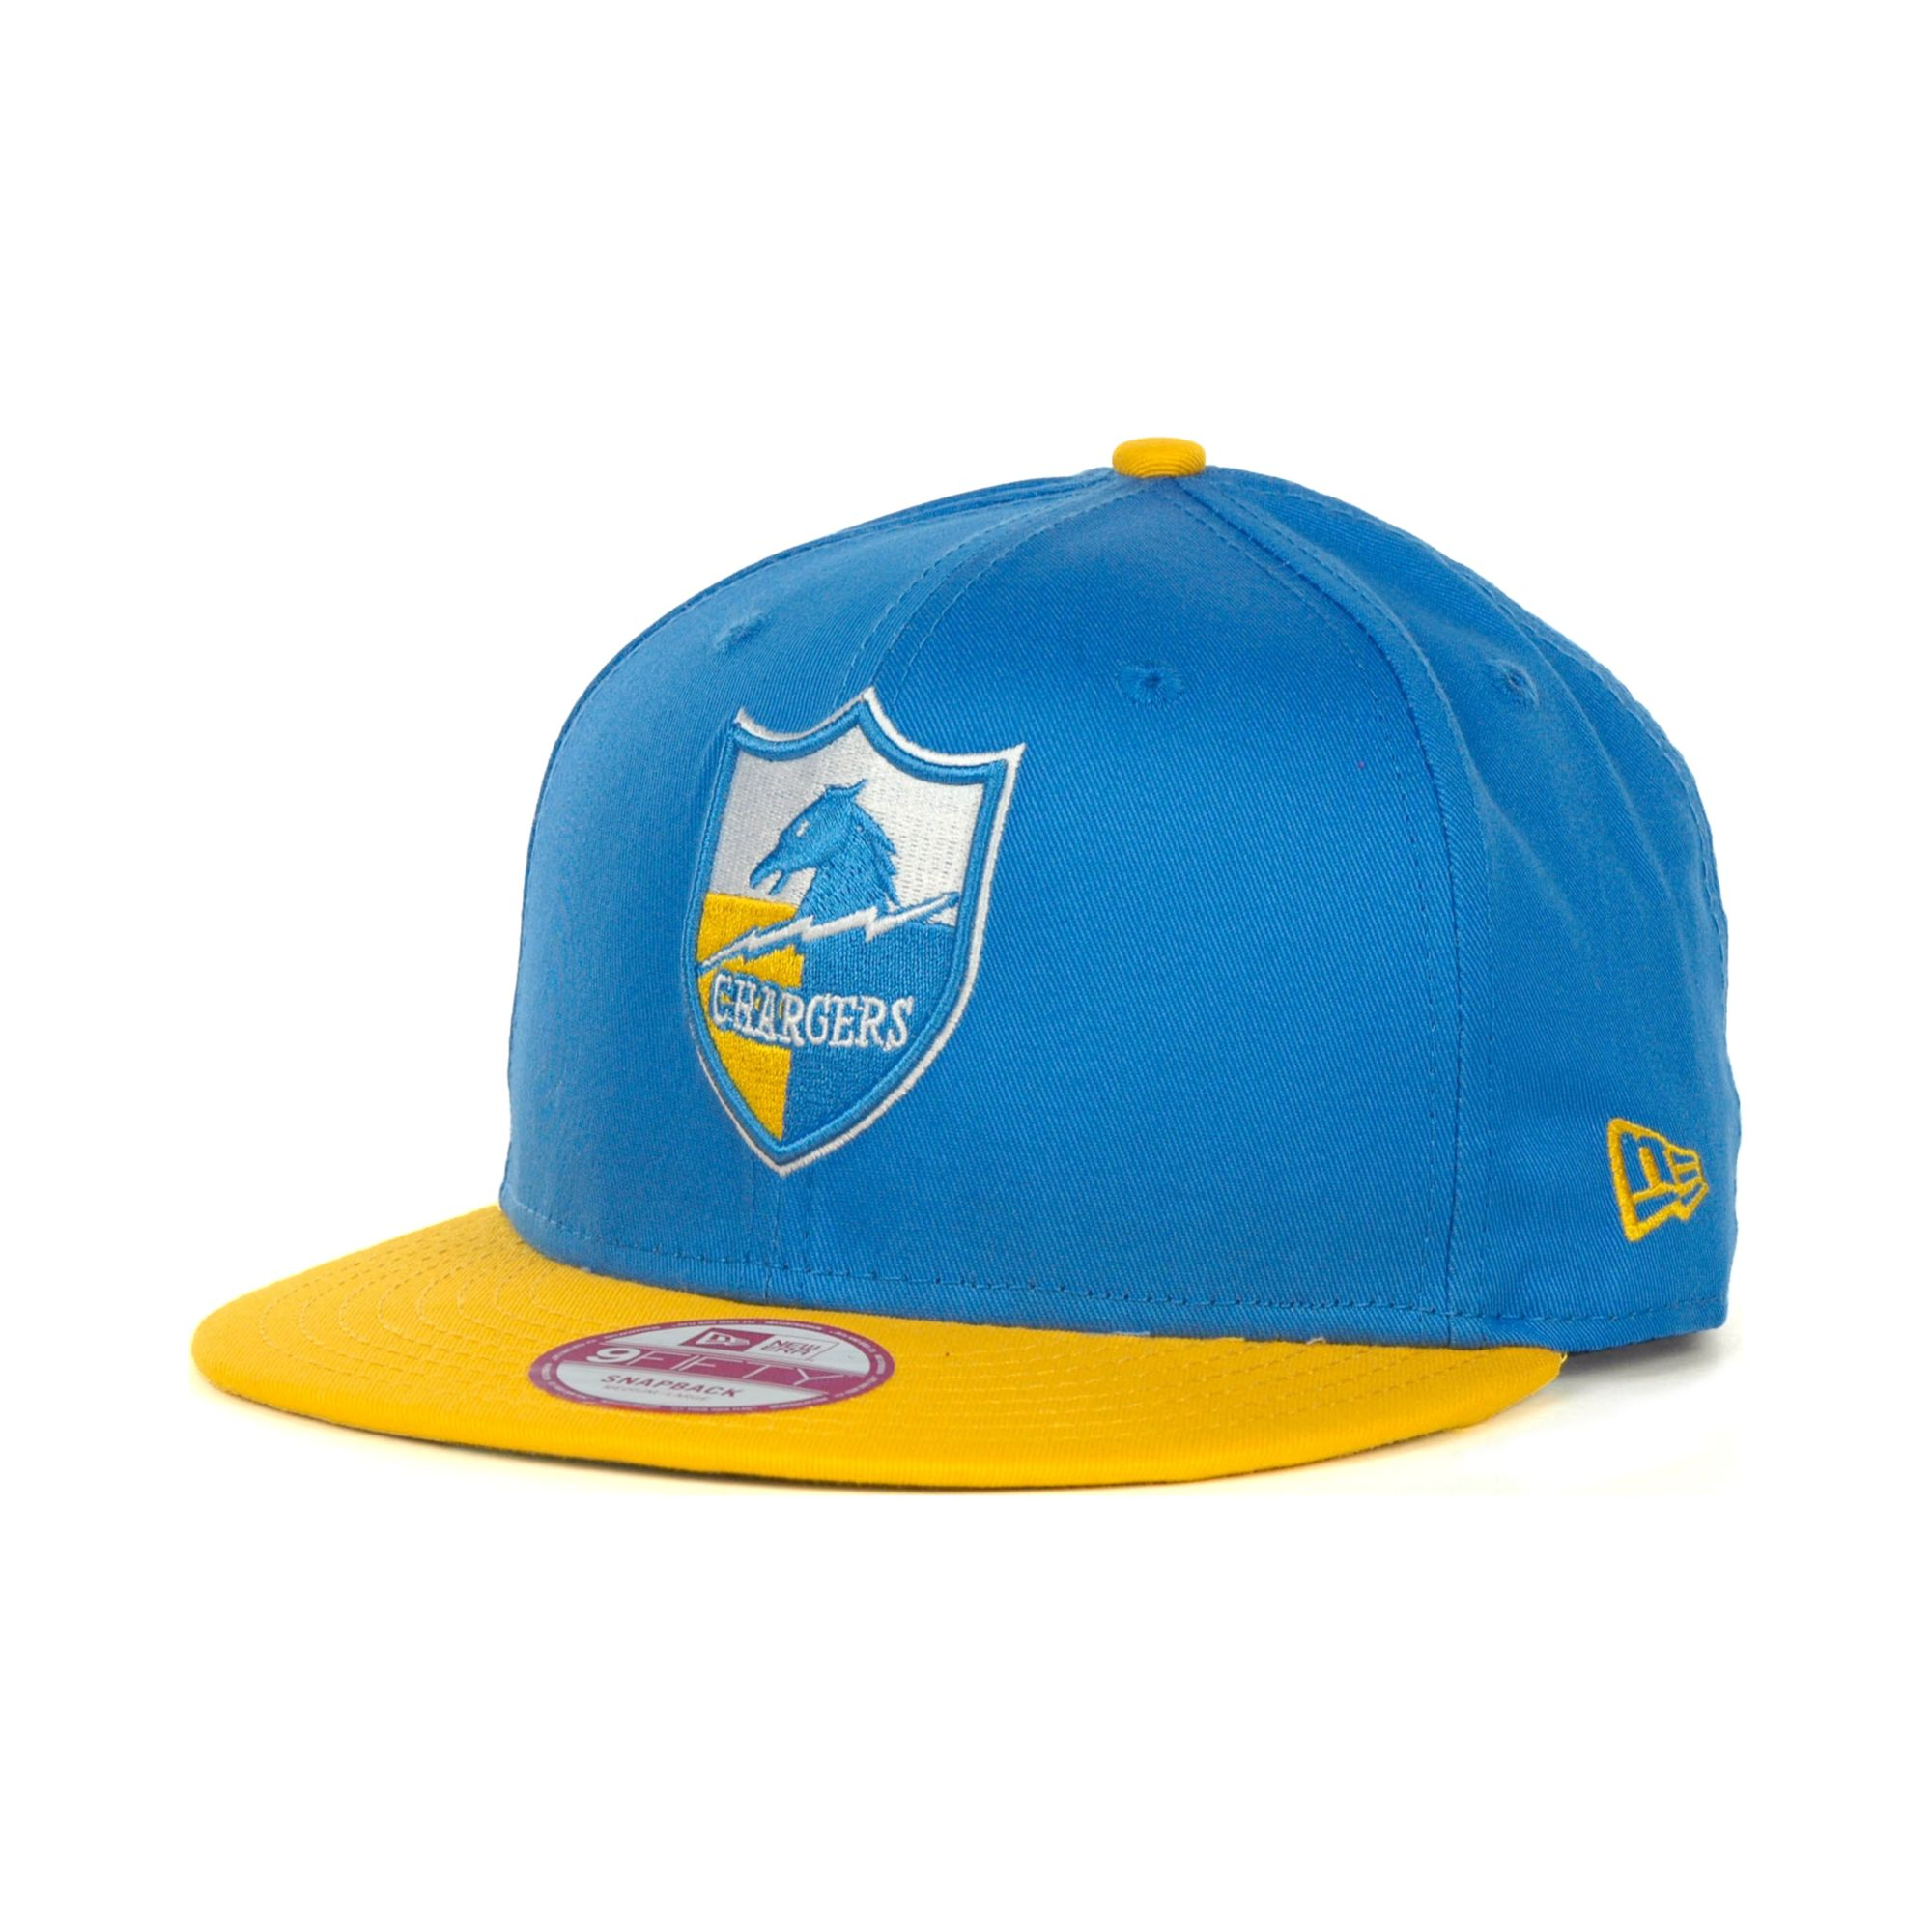 4140cad77 KTZ Blue San Diego Chargers 9fifty Snapback Hat for men